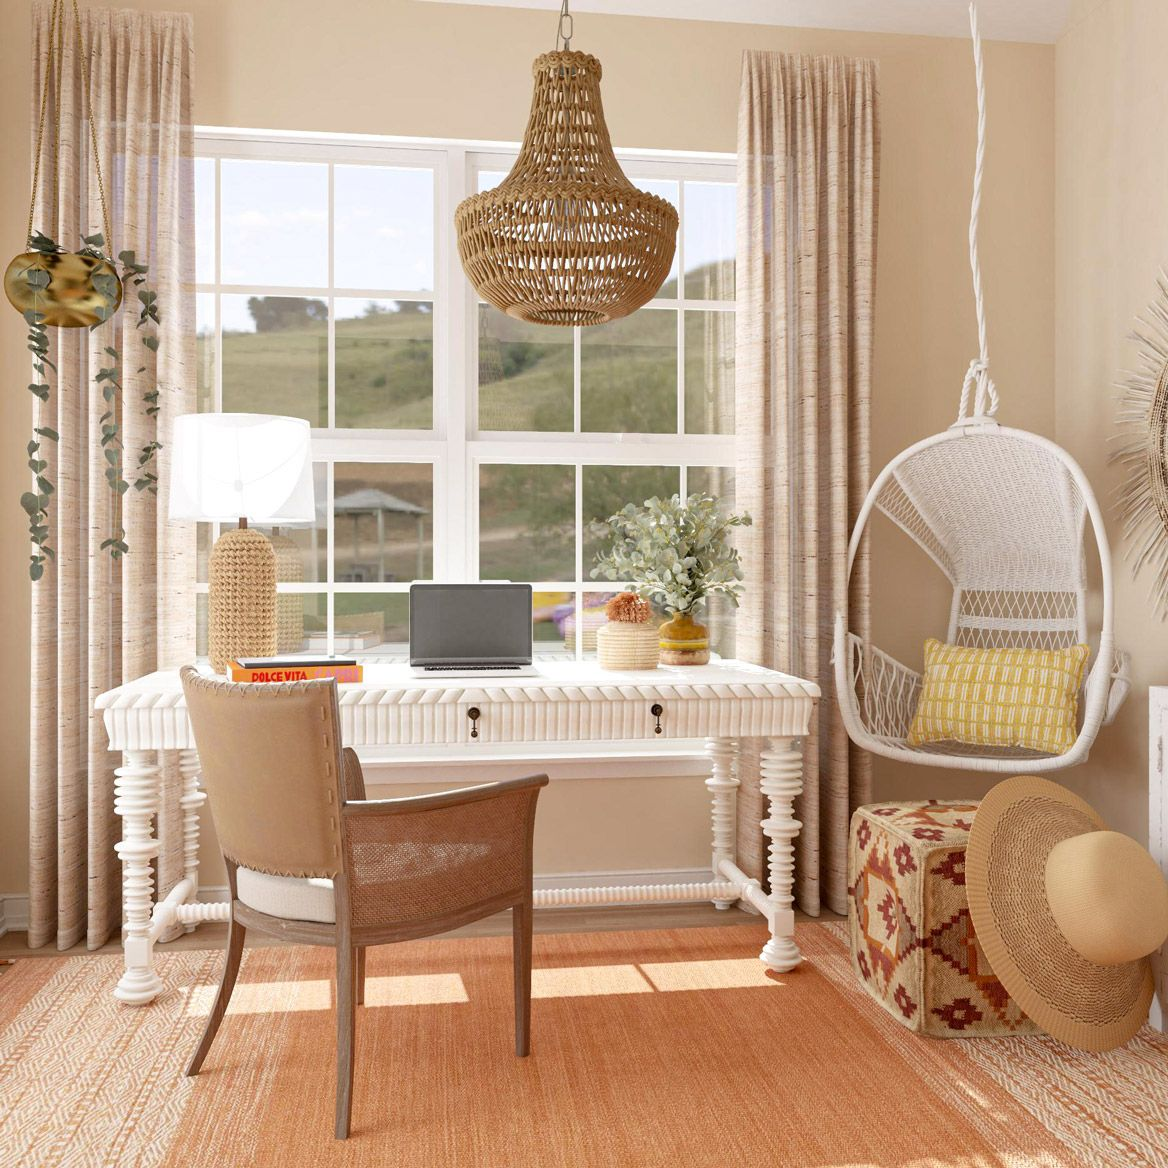 Home Office Design: 8 Ideas For A Productive Work From